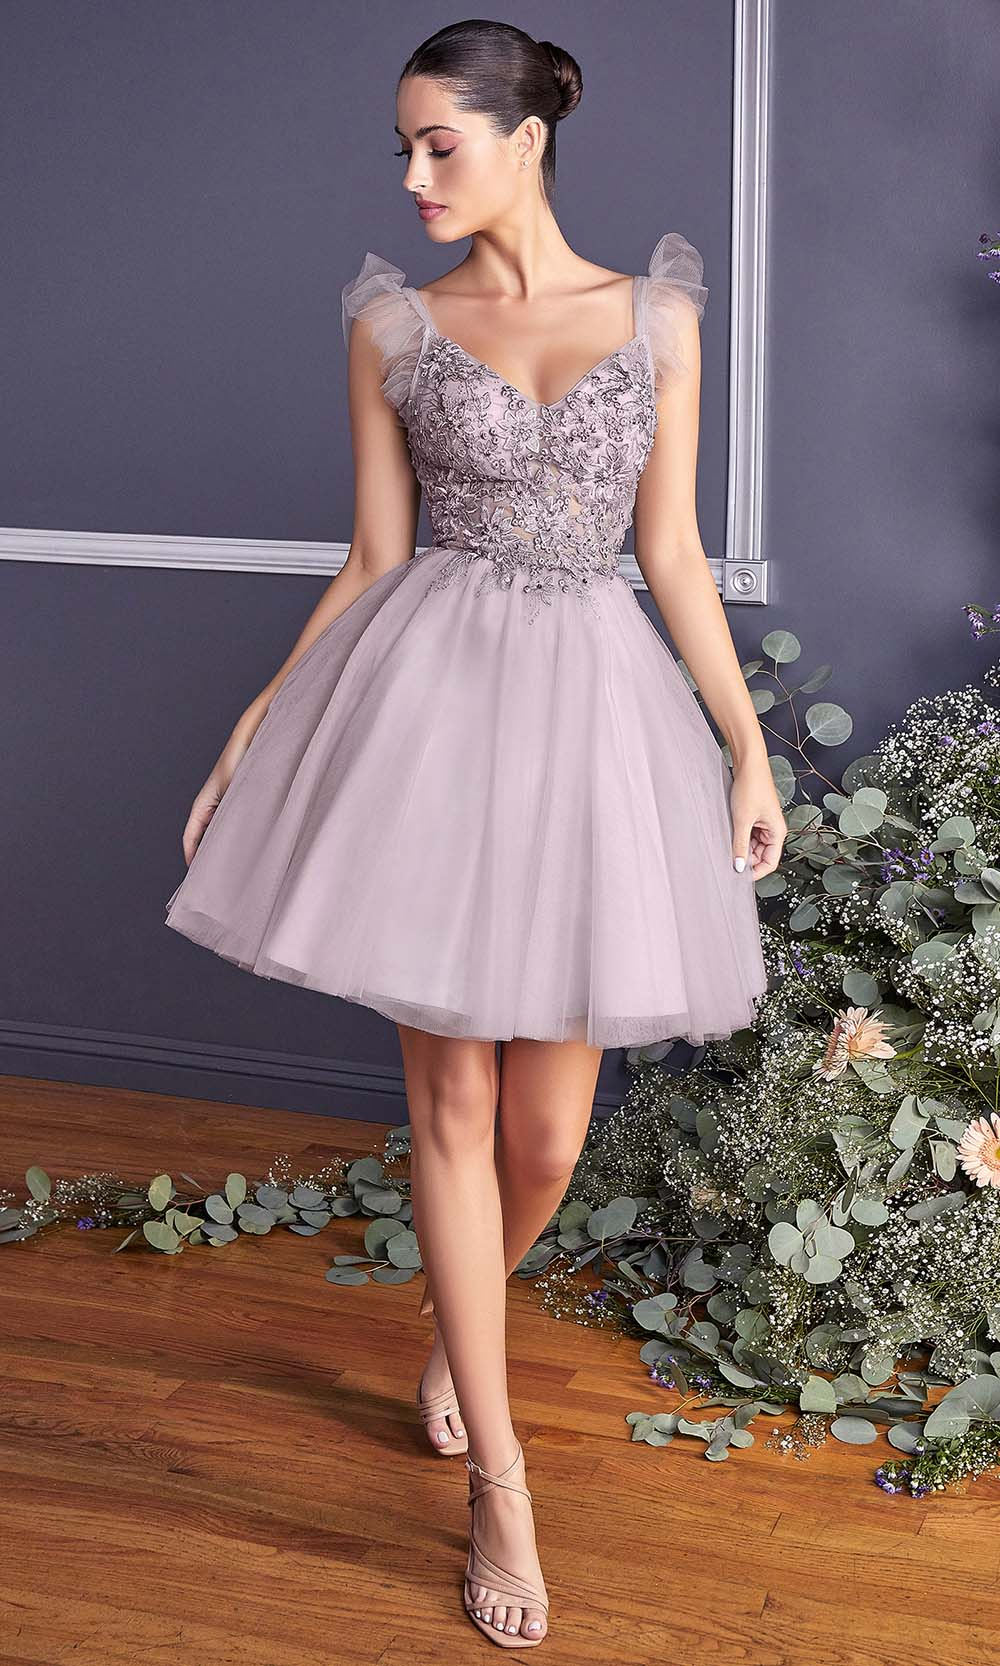 Cinderella Divine - 9238 Floral Appliqued Fit And Flare Short Dress In Mauve